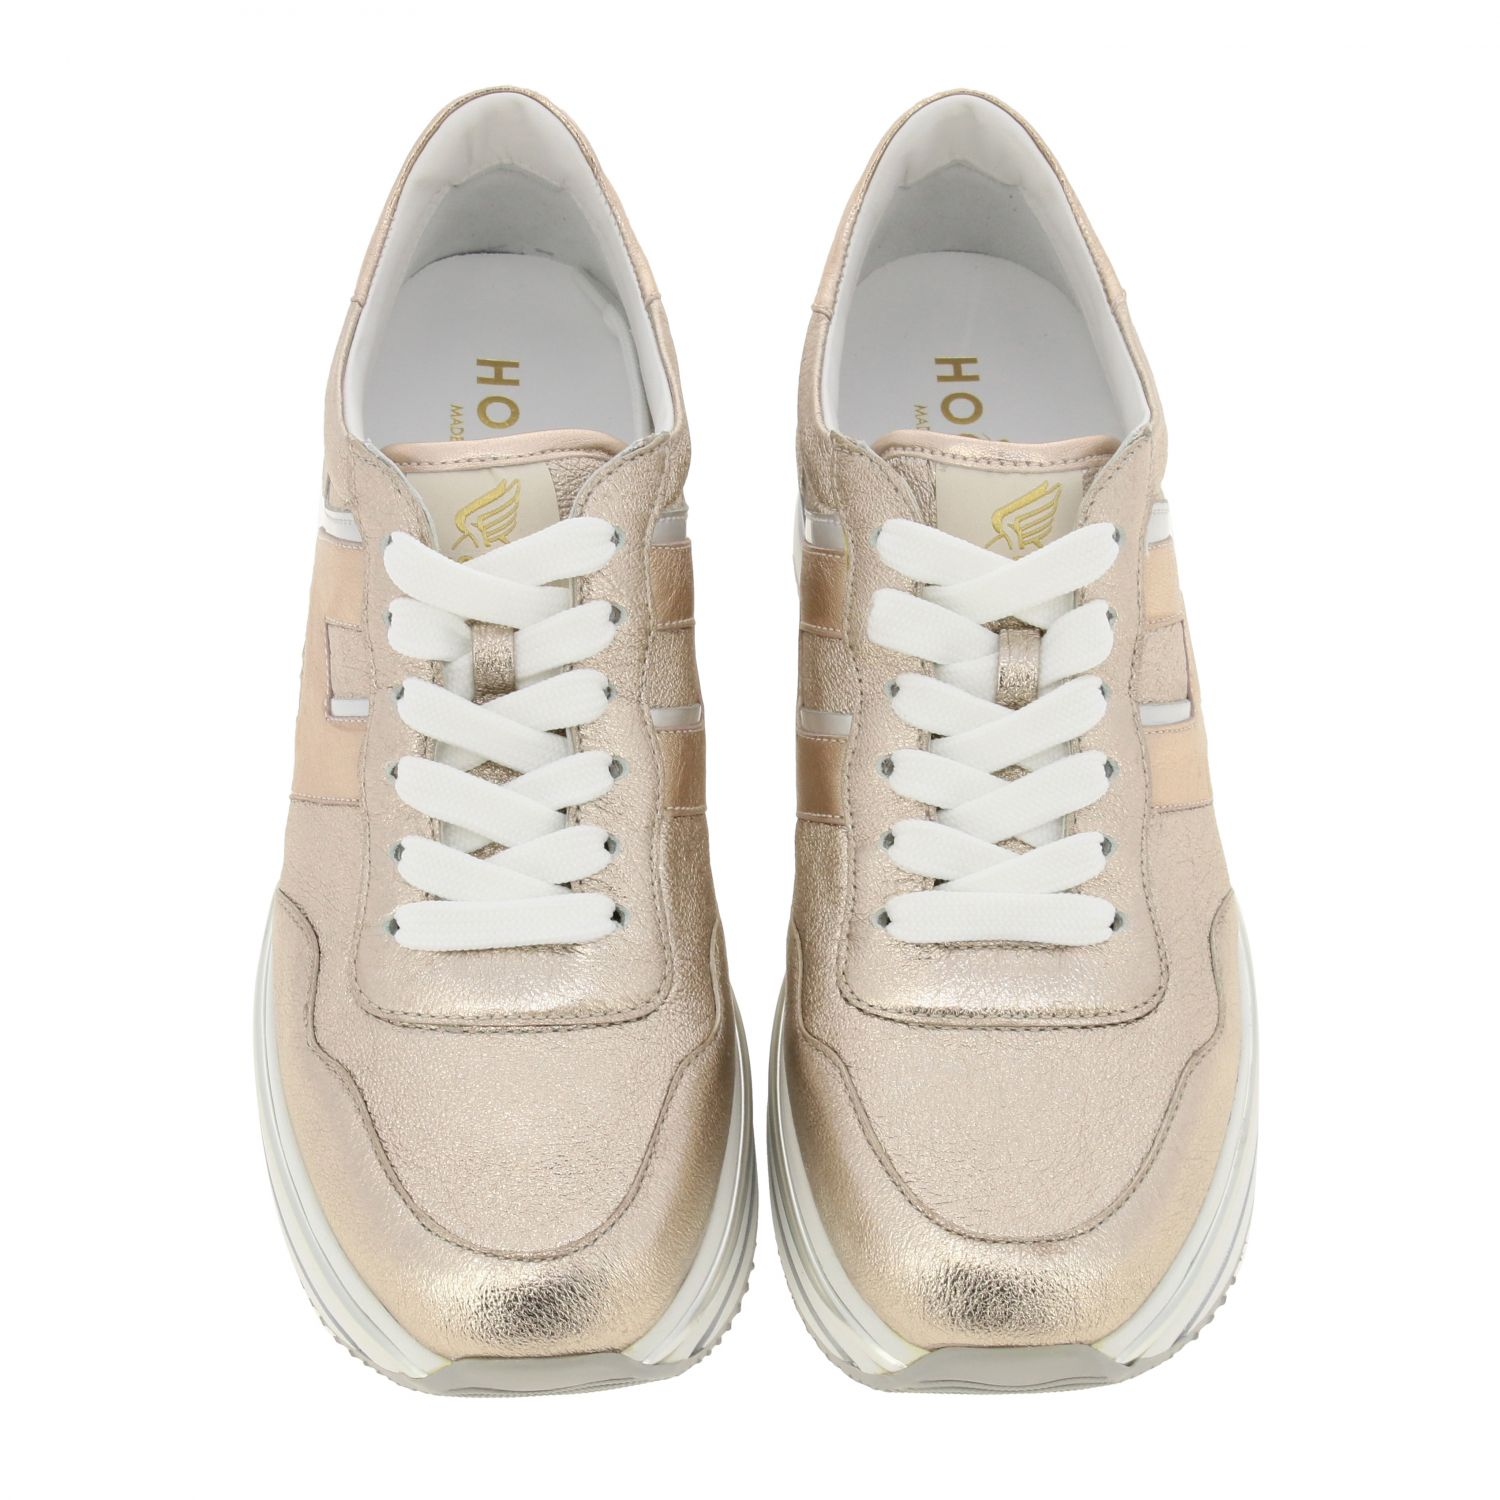 Hogan sneakers in laminated and mirrored leather with sole 222 pink 3